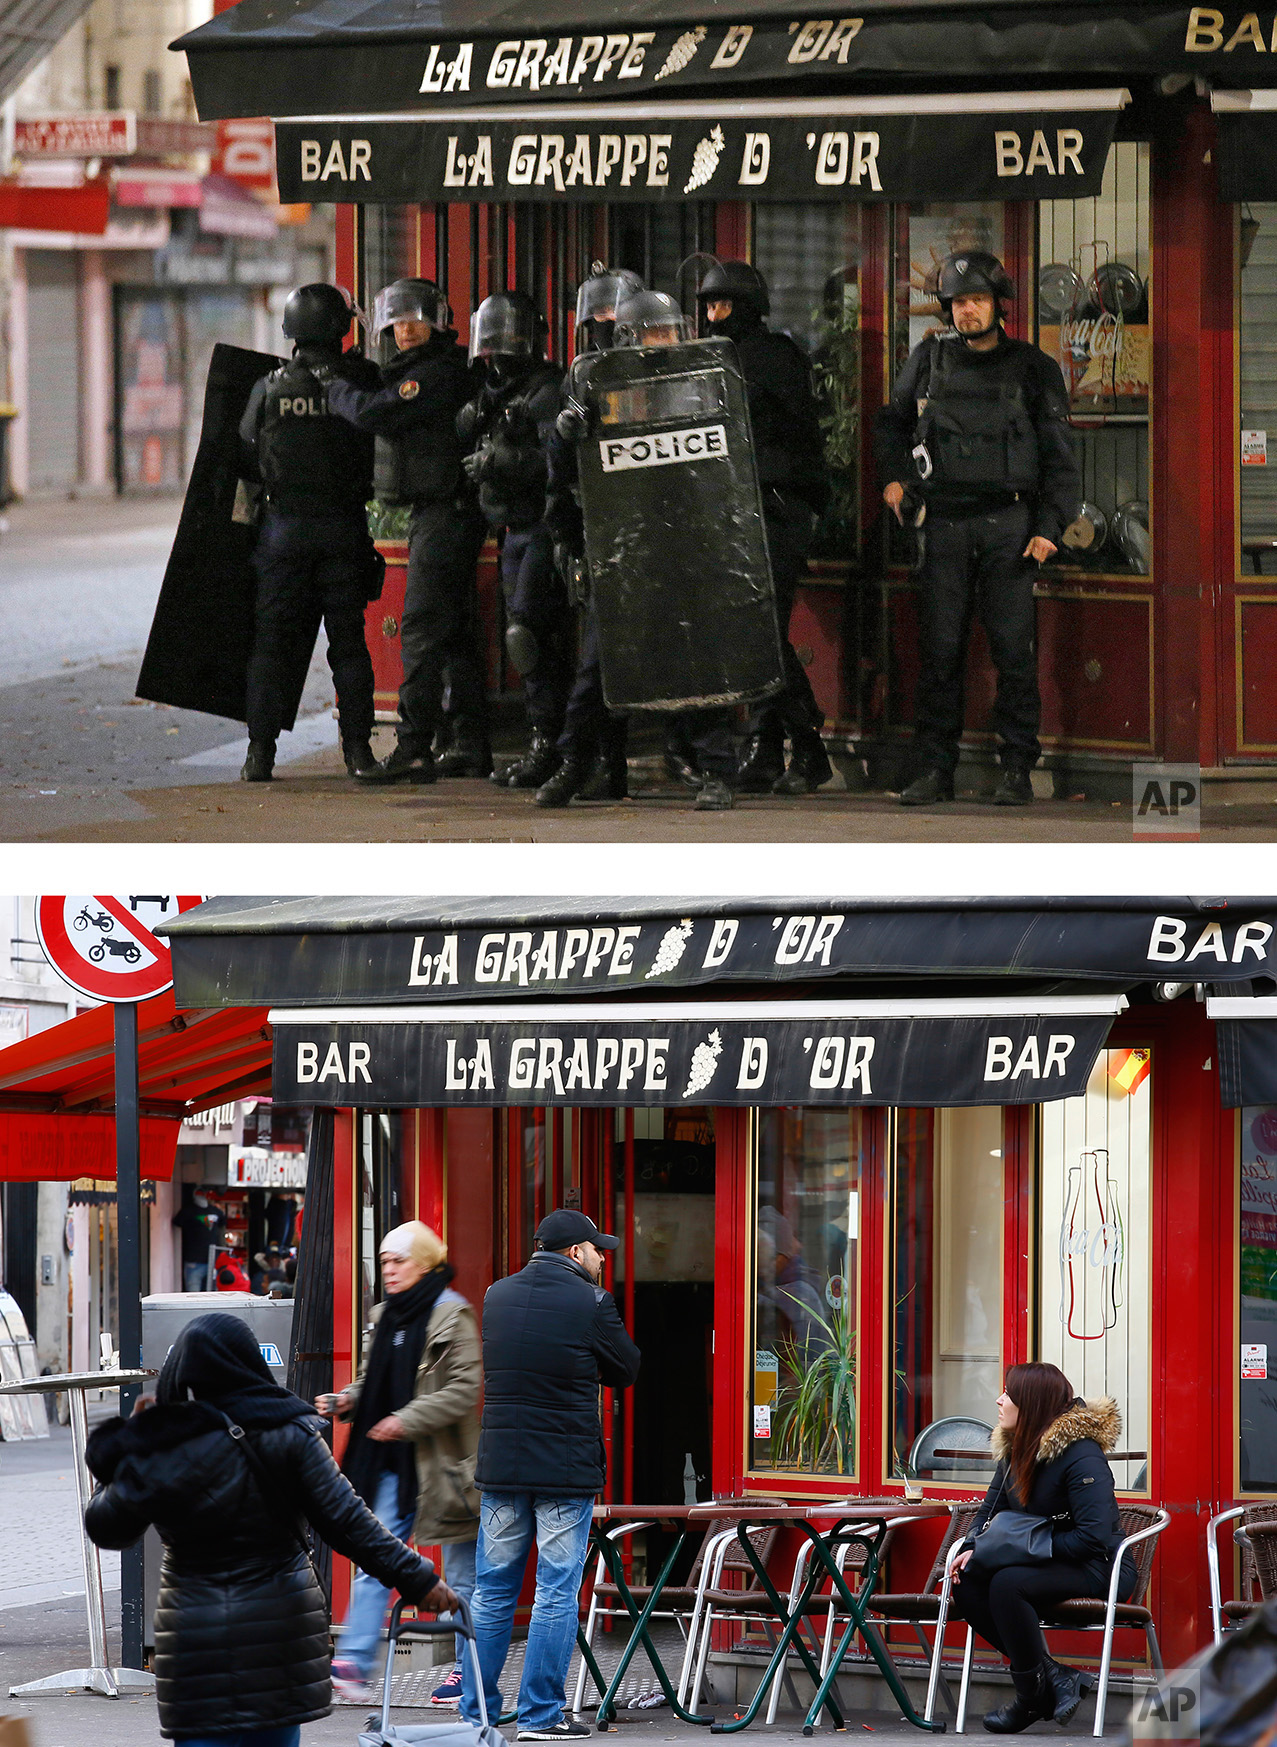 This combination of two photos shows a Wednesday, Nov. 18, 2015 photo, top, of police operating in Saint Denis, a northern suburb of Paris, after the deadly attacks, and people walking by and using the cafe, bottom, on Tuesday, Nov. 8, 2016. (AP Photo/Francois Mori, Francois Mori)